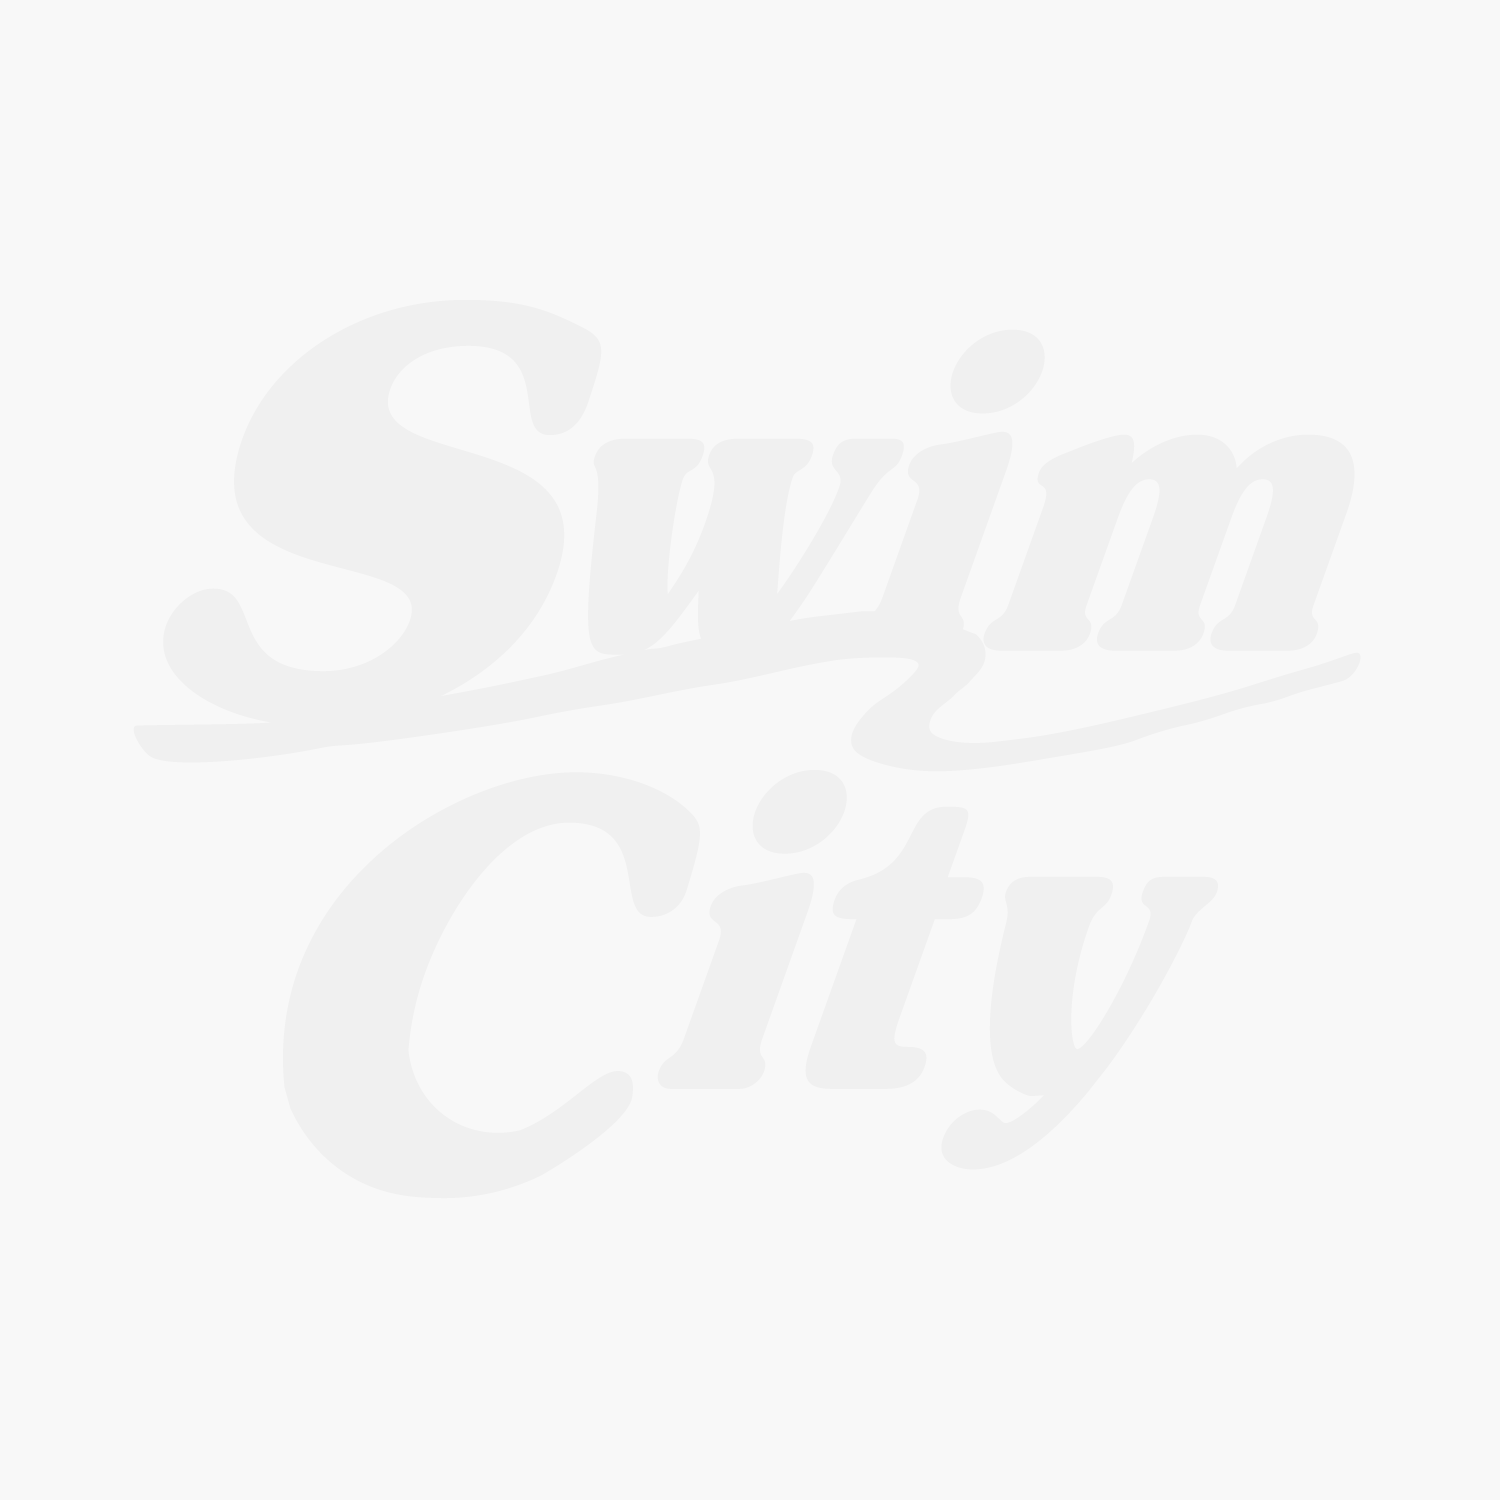 SWIM SYSTEMS:MIDSUMMER STRIPE BRIDGET BANDEAU TOP